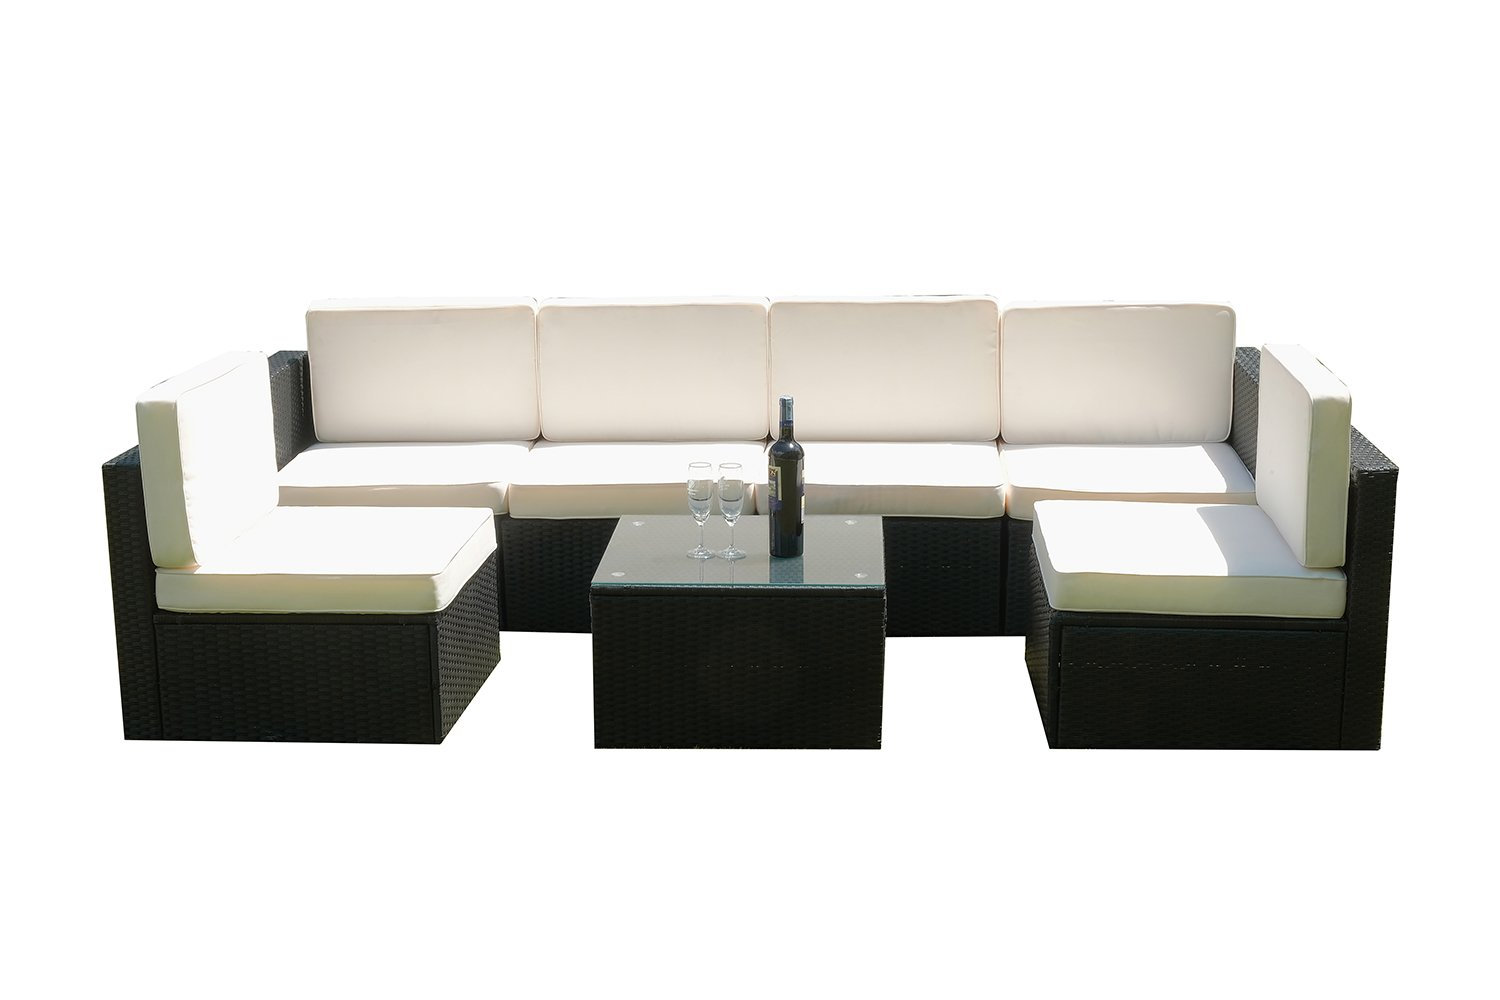 mcombo 7tlg poly rattan gartenm bel sitzgarnitur sitzgruppe sofa g nstig bestellen. Black Bedroom Furniture Sets. Home Design Ideas